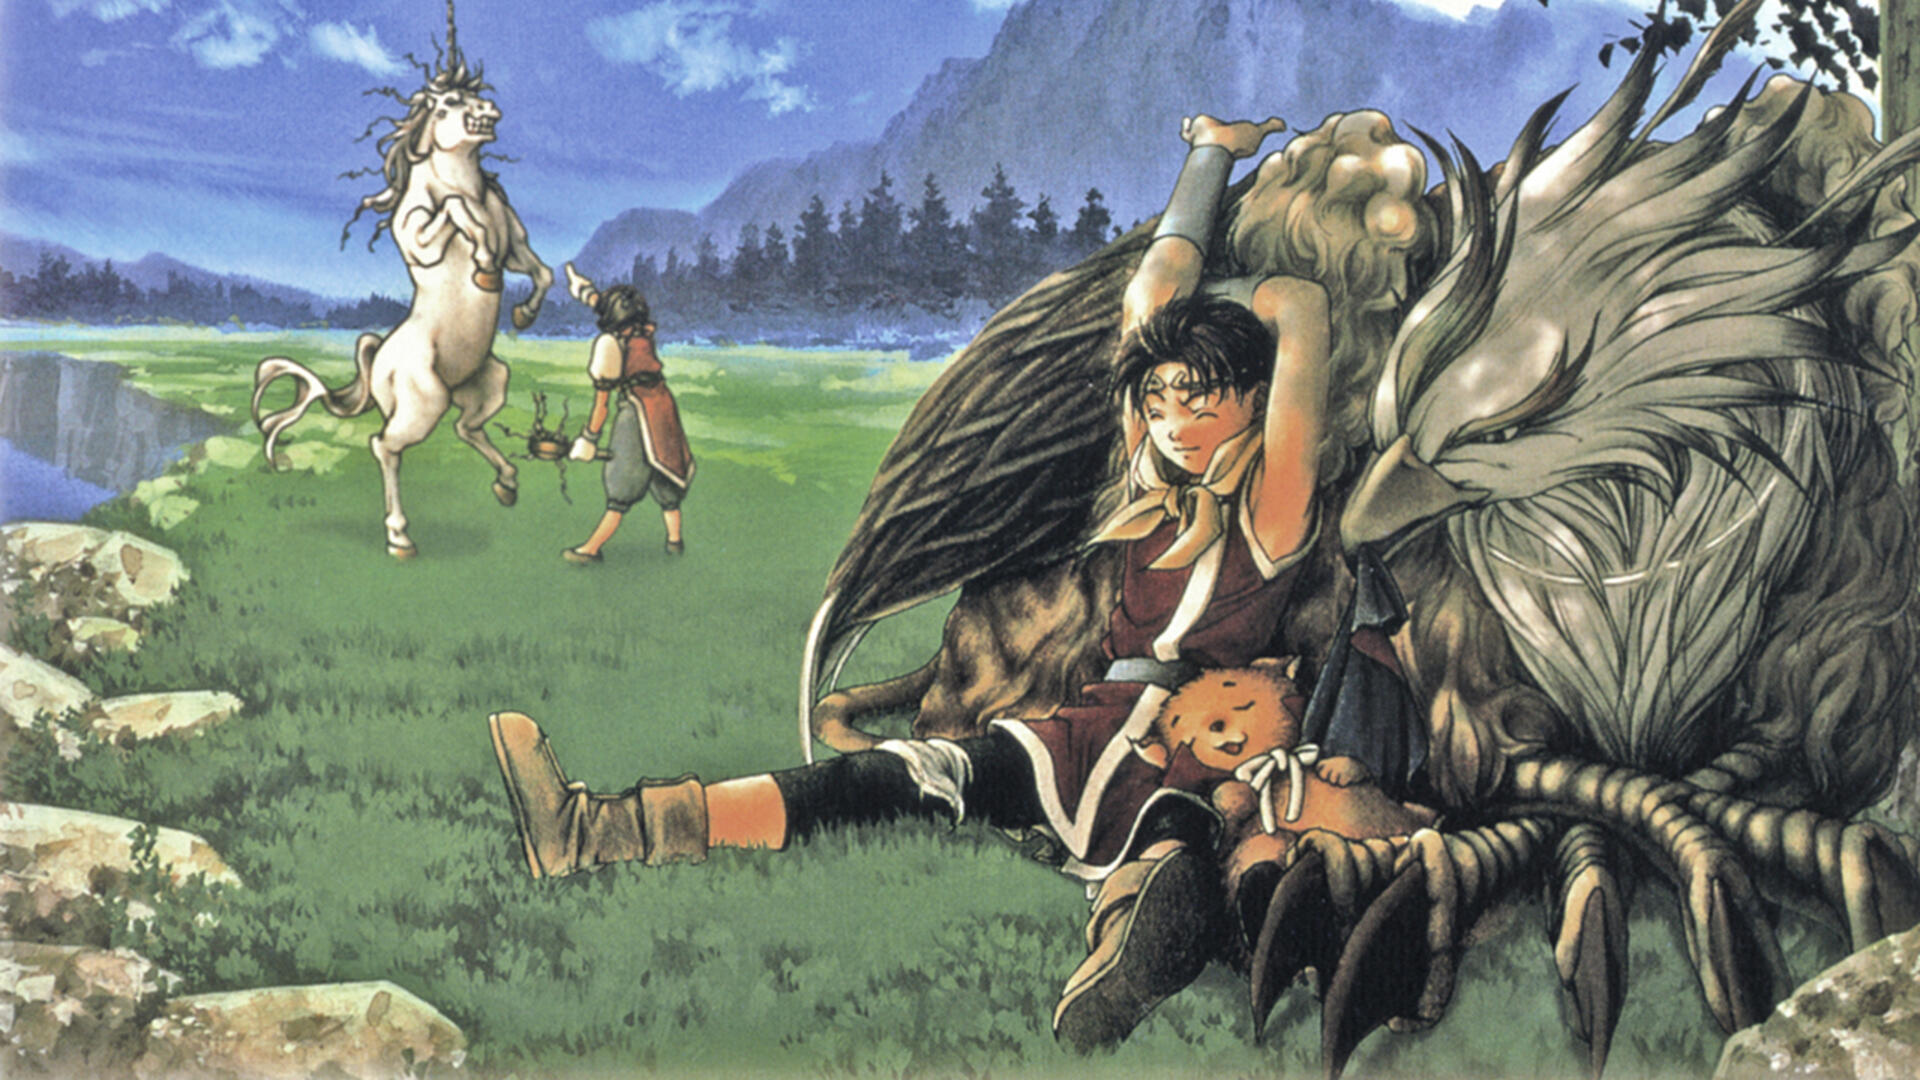 The Top 25 RPGs of All Time #5: Suikoden 2